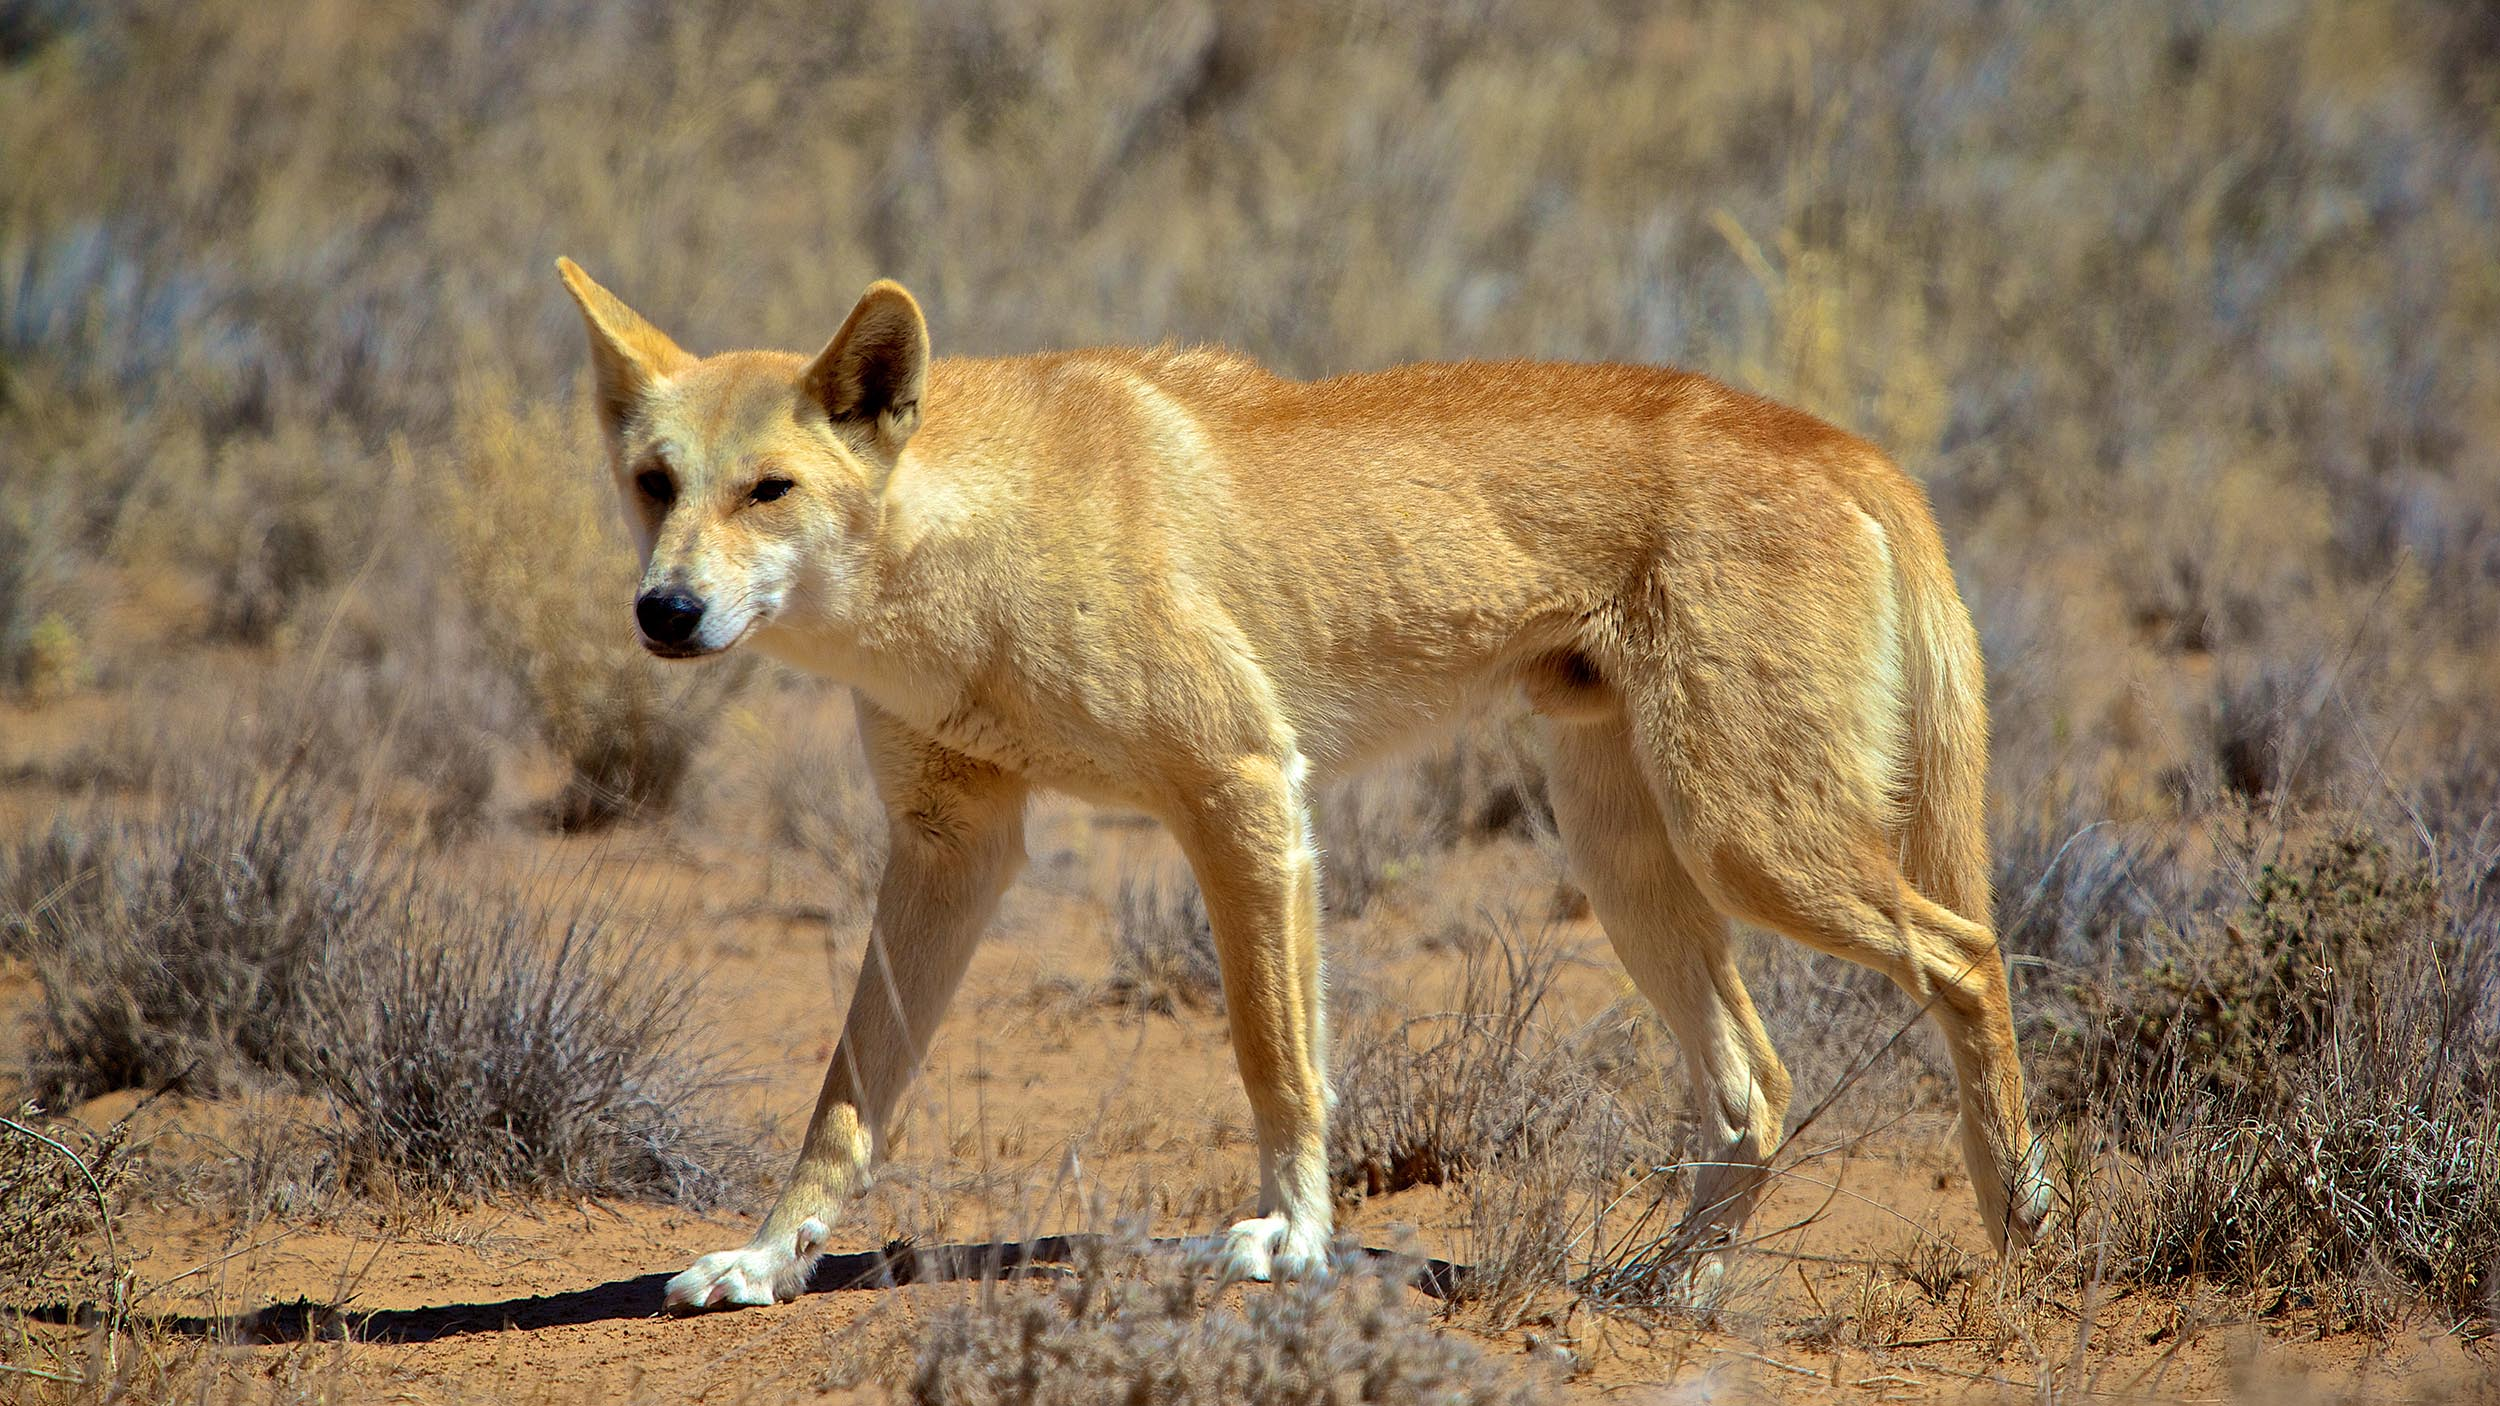 The Dingo is an important native predator, helping to control feral animals such as cats and goats in the Outback. This dingo was photographed in the Strzelecki Desert, central Australia.